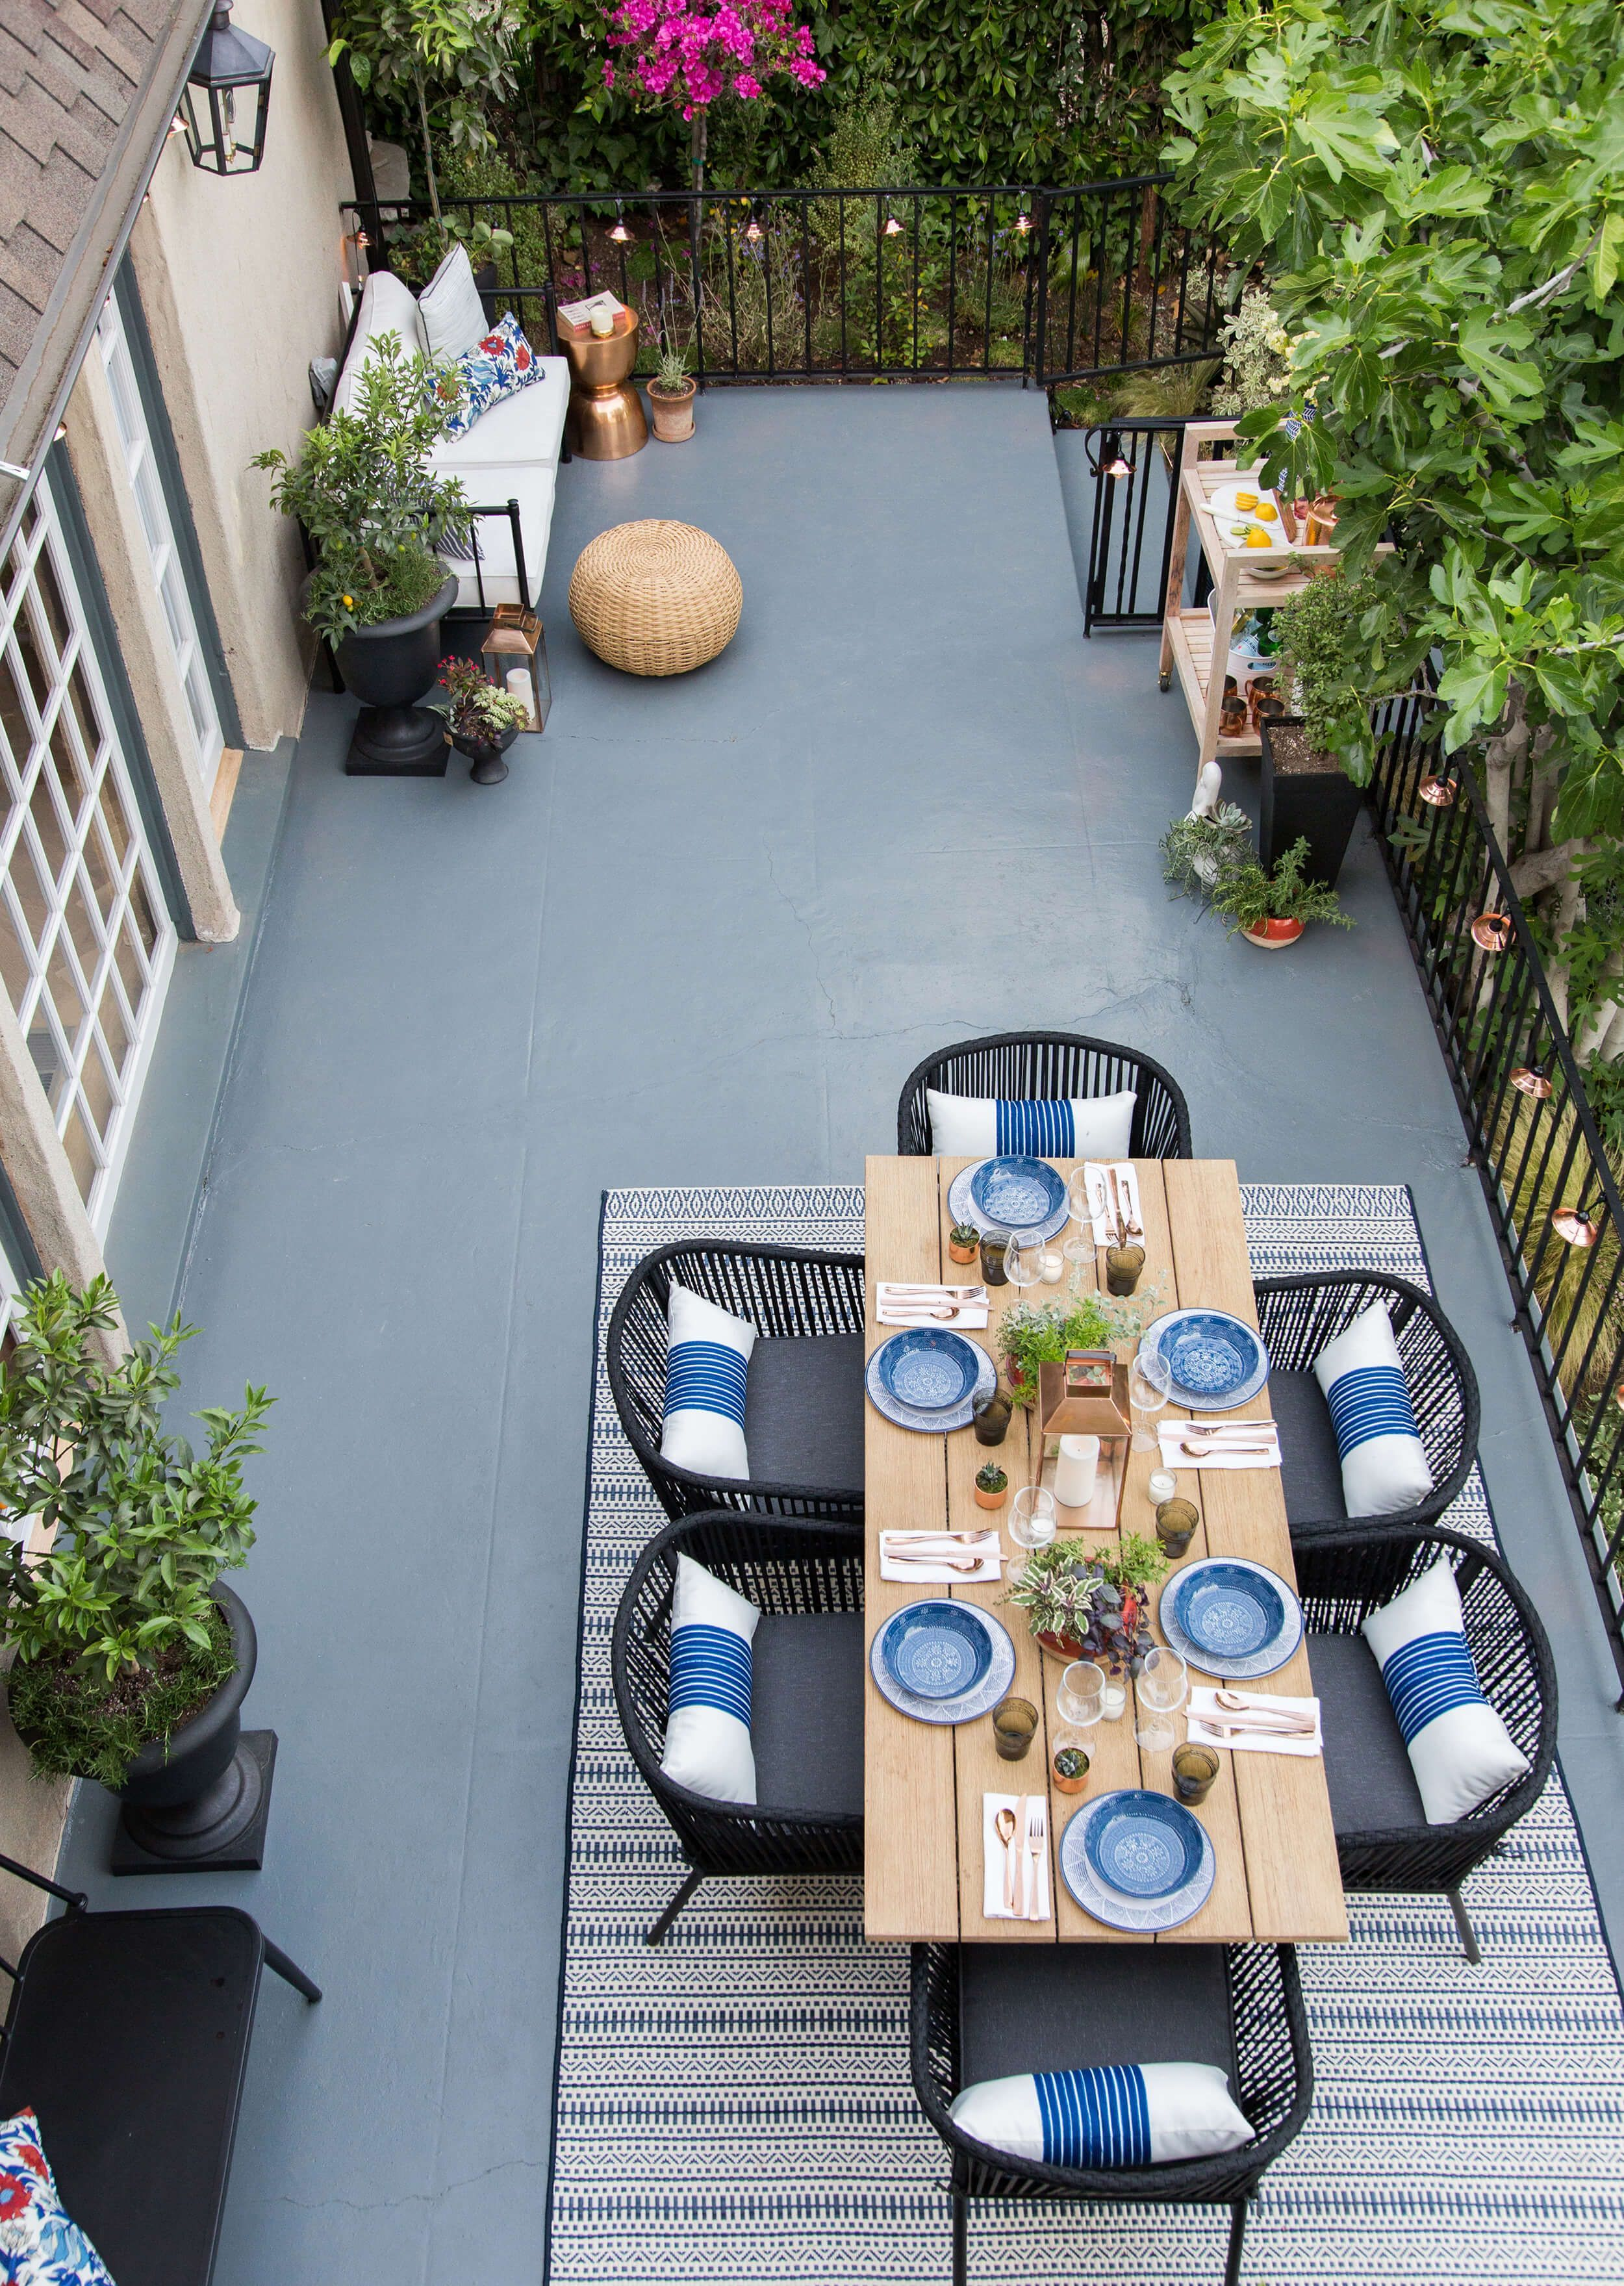 How To Decorate Your Outdoor Space With All Target